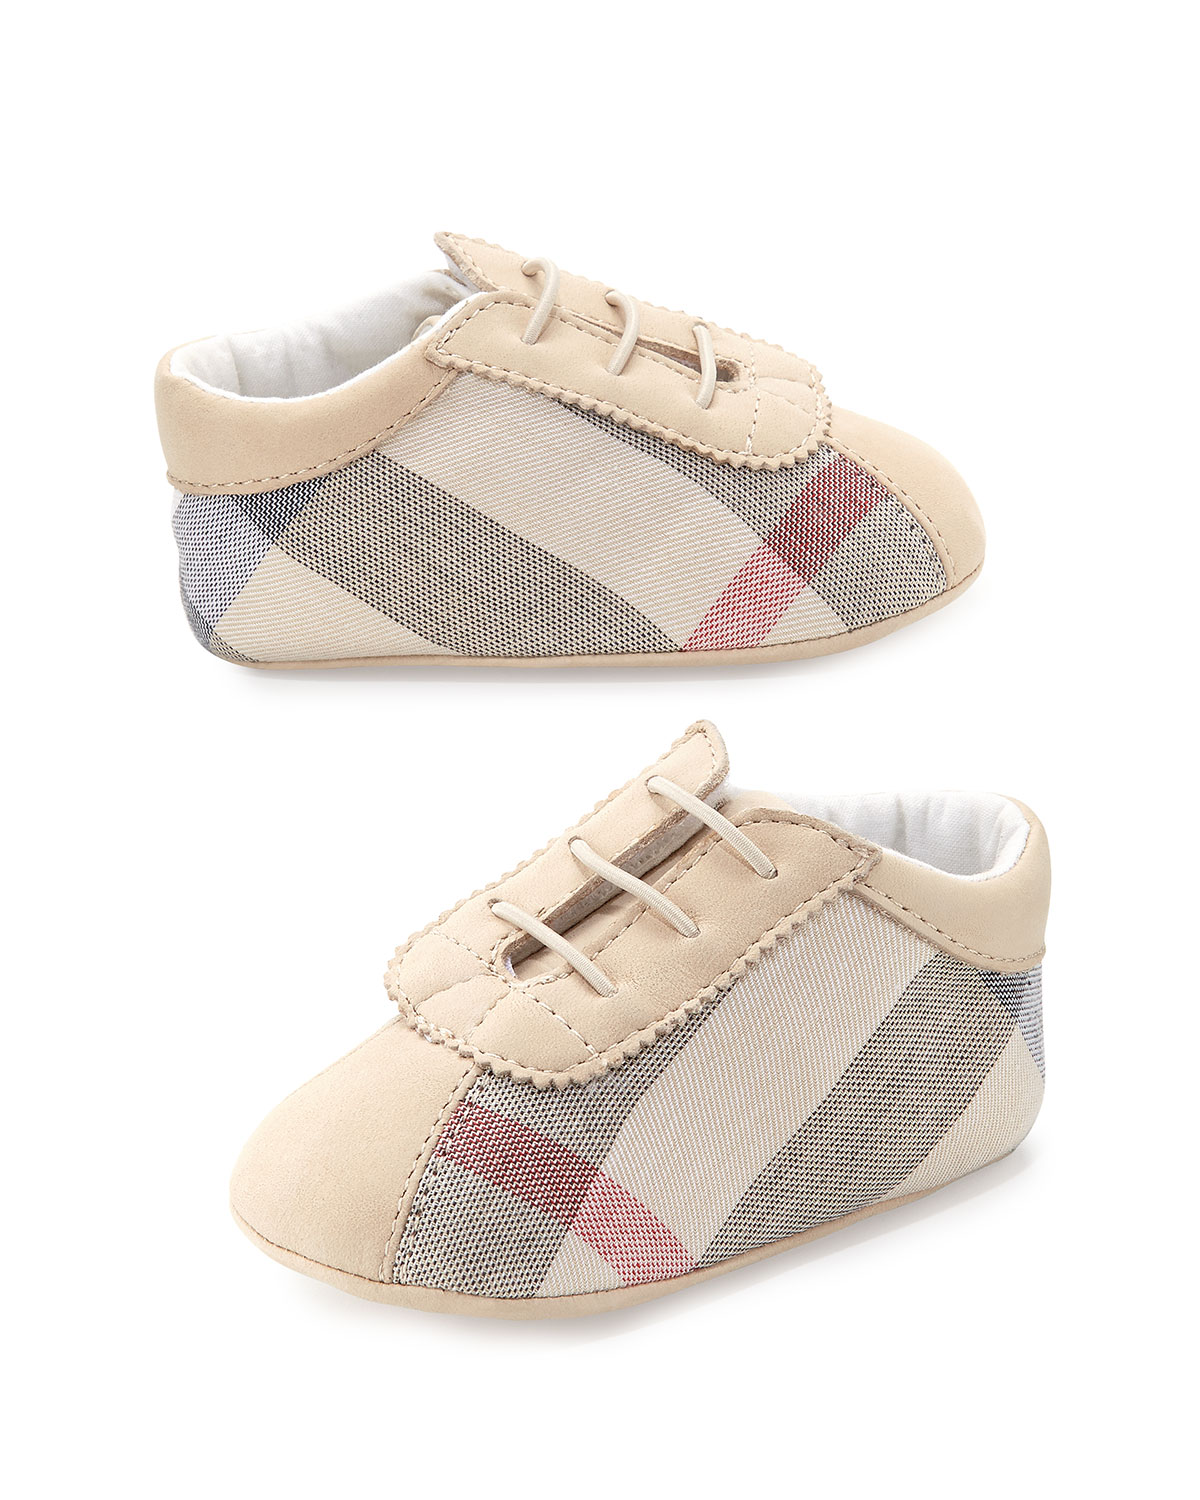 Bosco Check Newborn Boys Shoes Stone